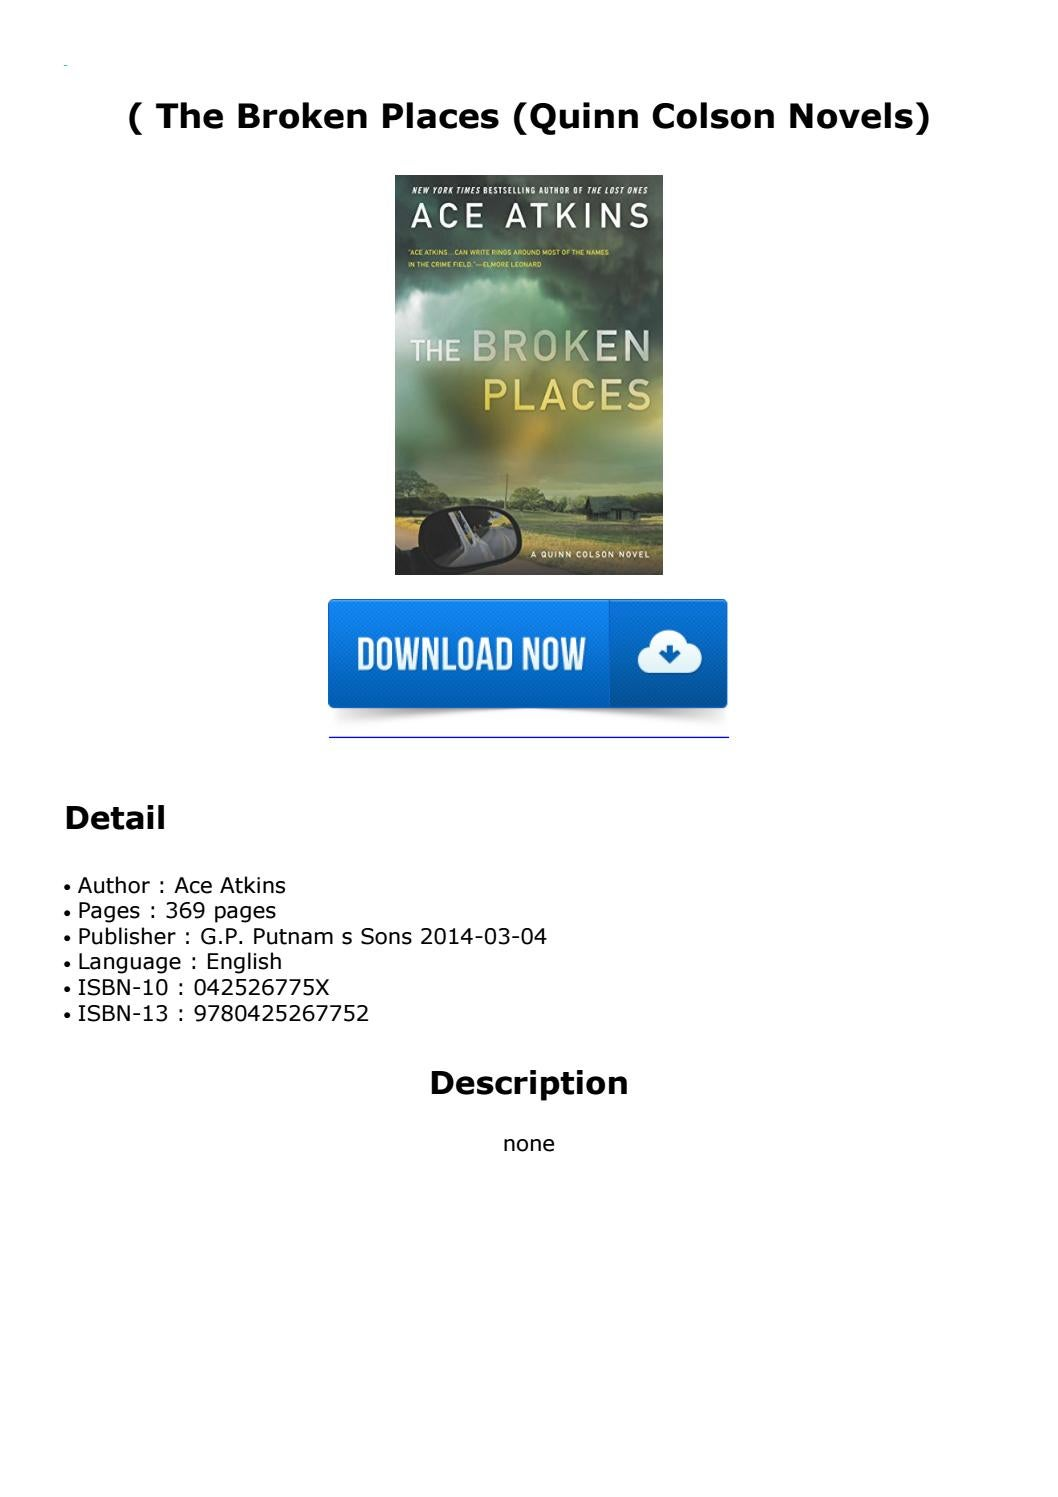 ( The Broken Places (Quinn Colson Novels) by Njerinewguy - issuu